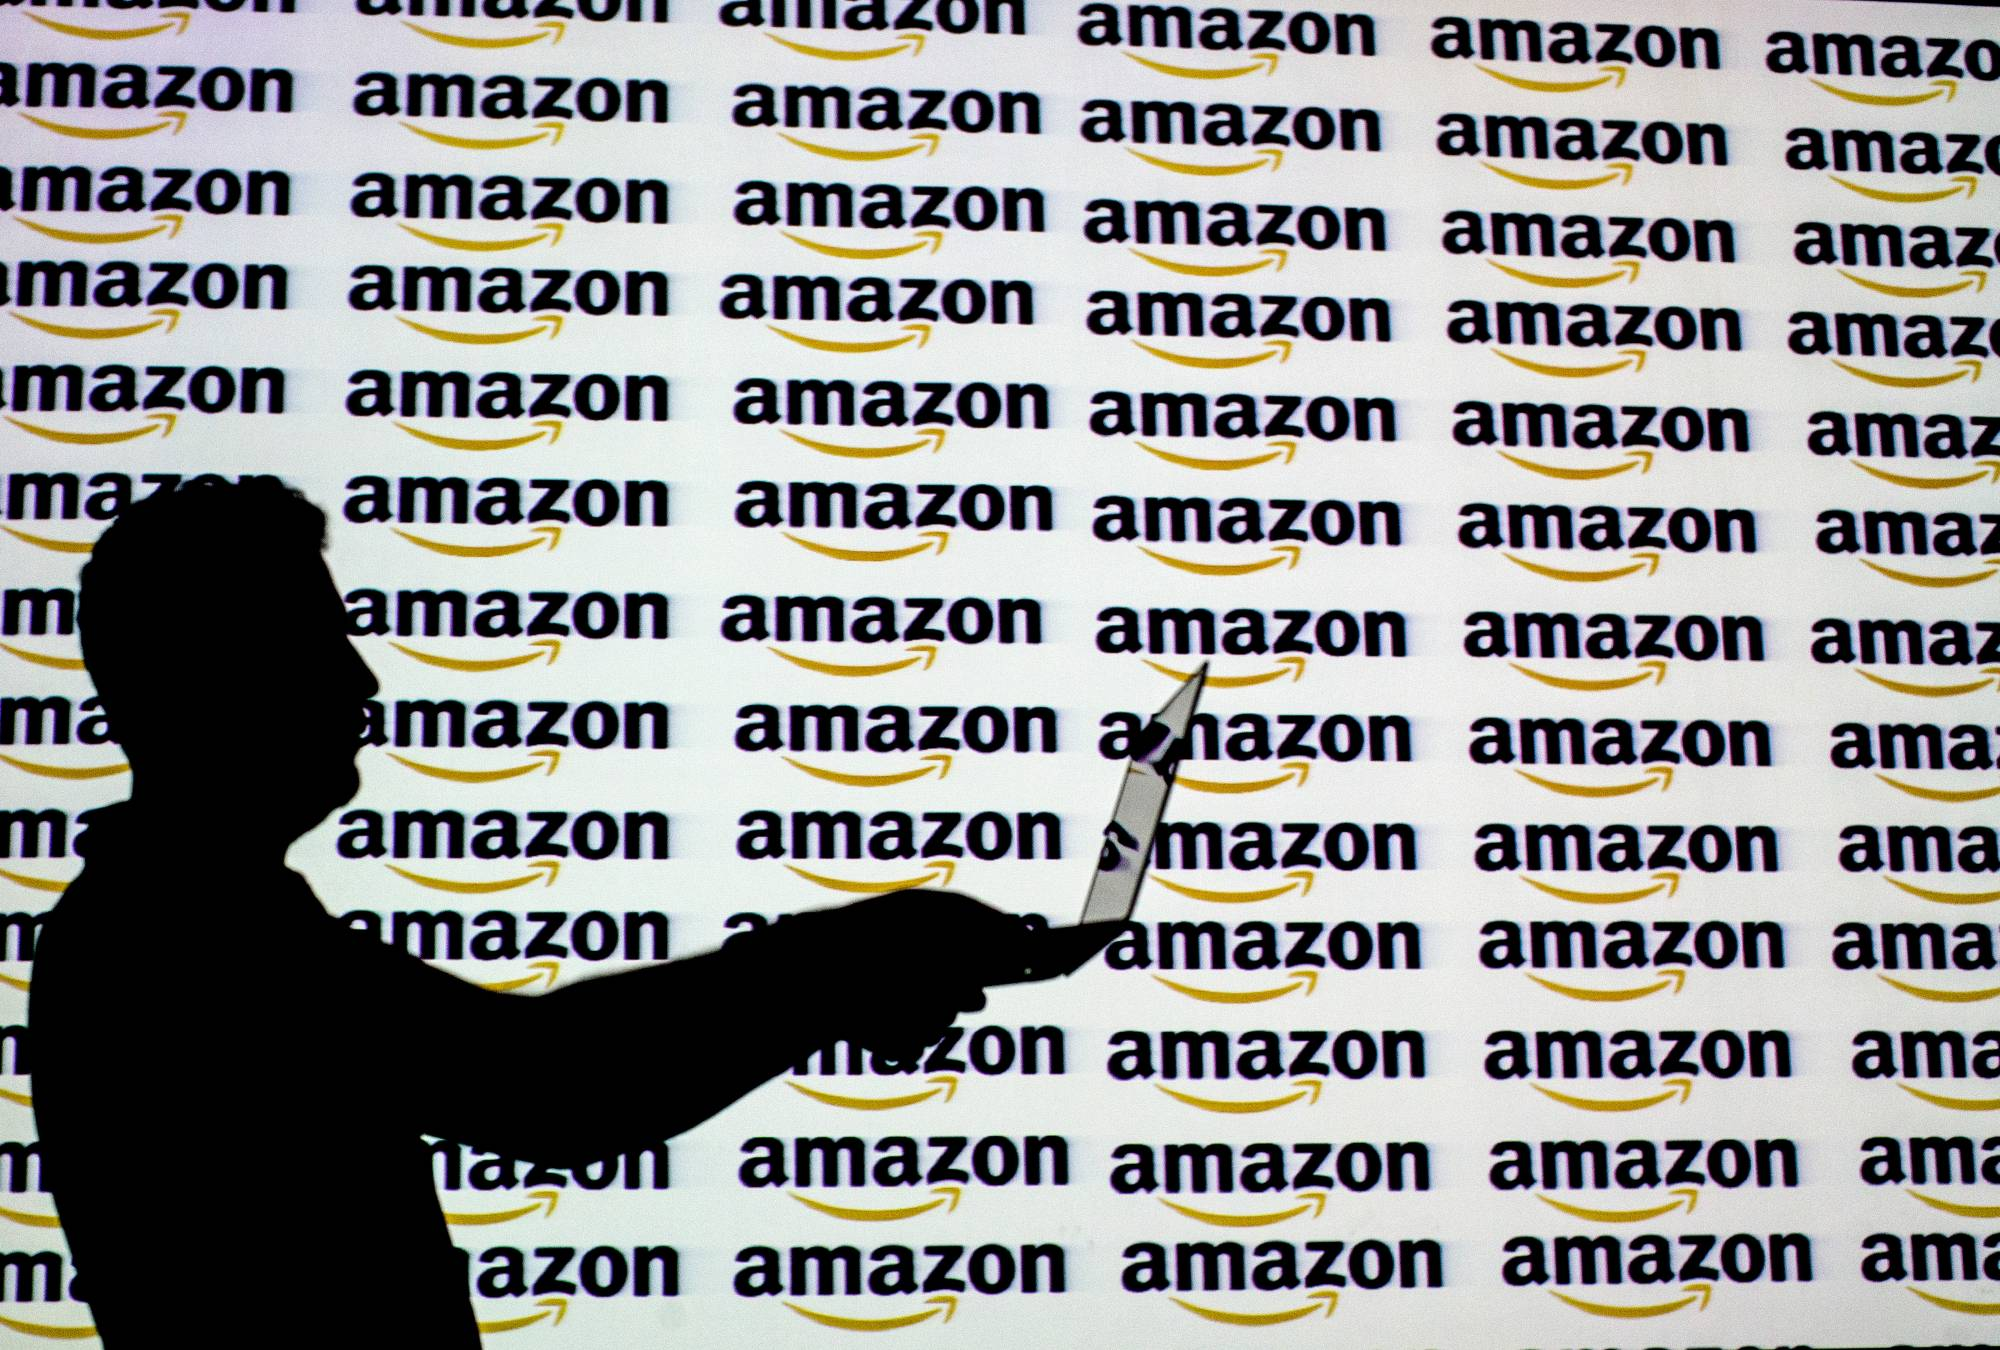 Amazon is now third biggest digital ad platform, behind Facebook and Google.